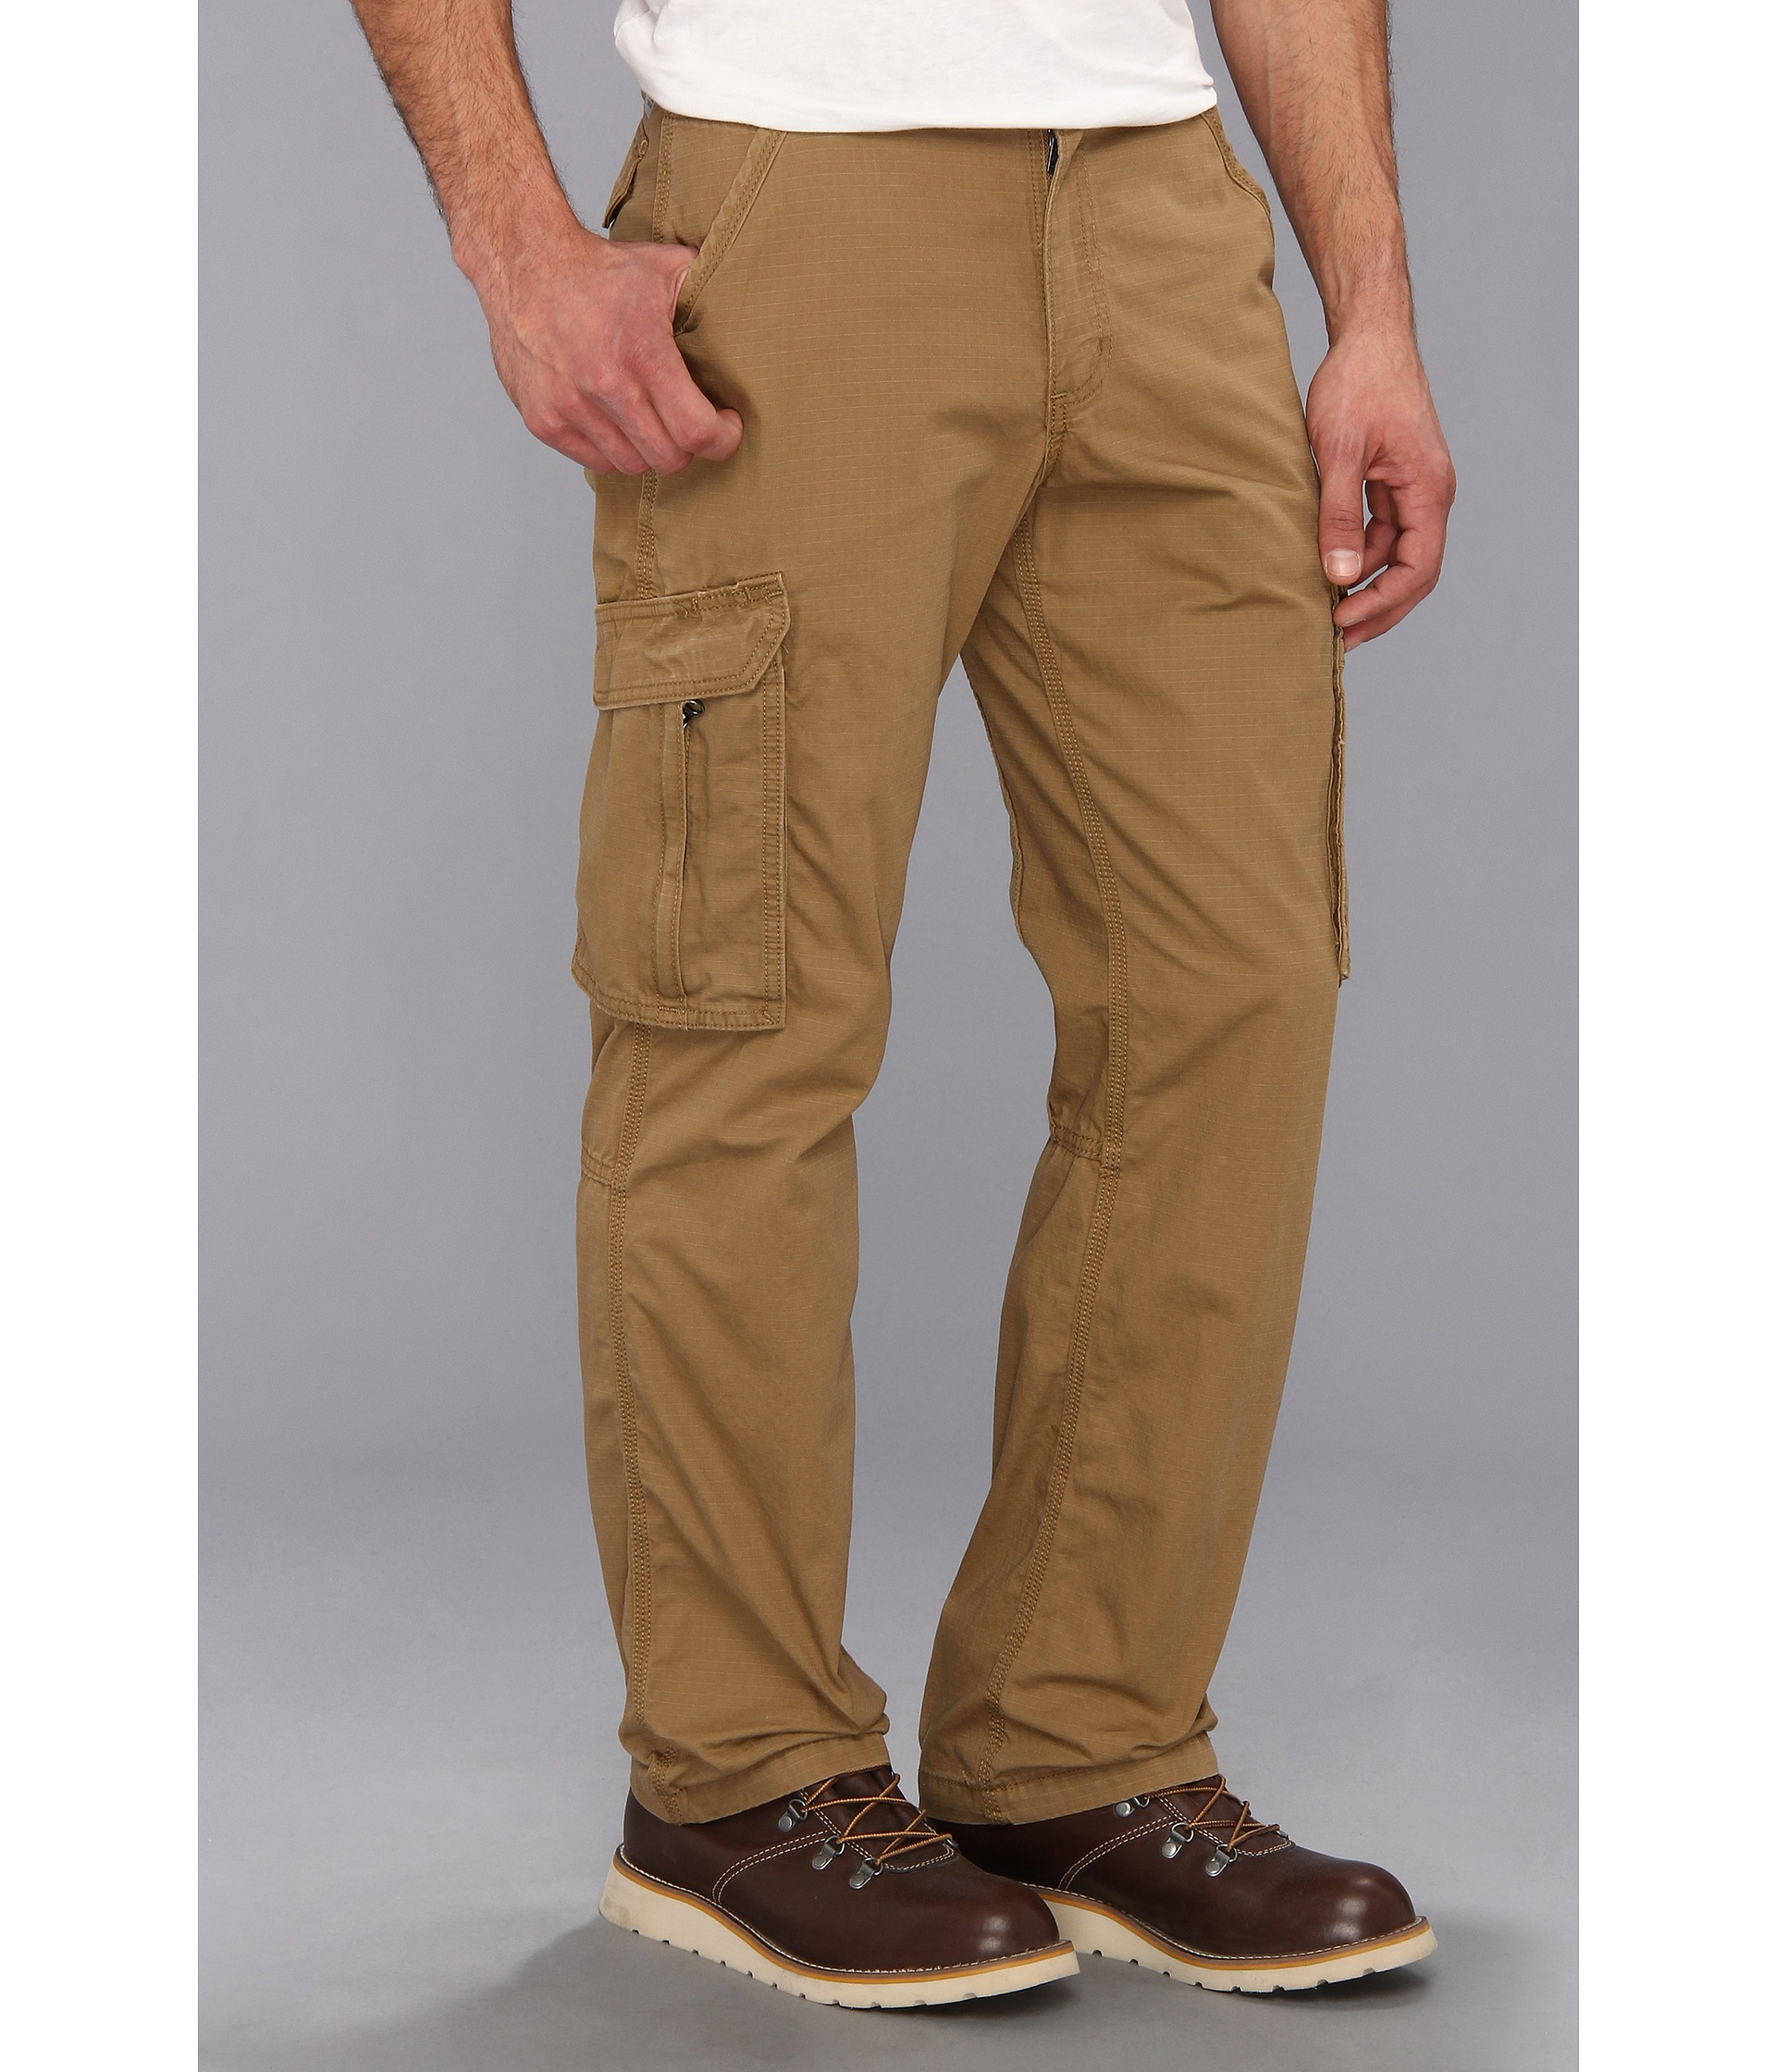 Carhartt Force Tappen Cargo Pant at 6pm.com